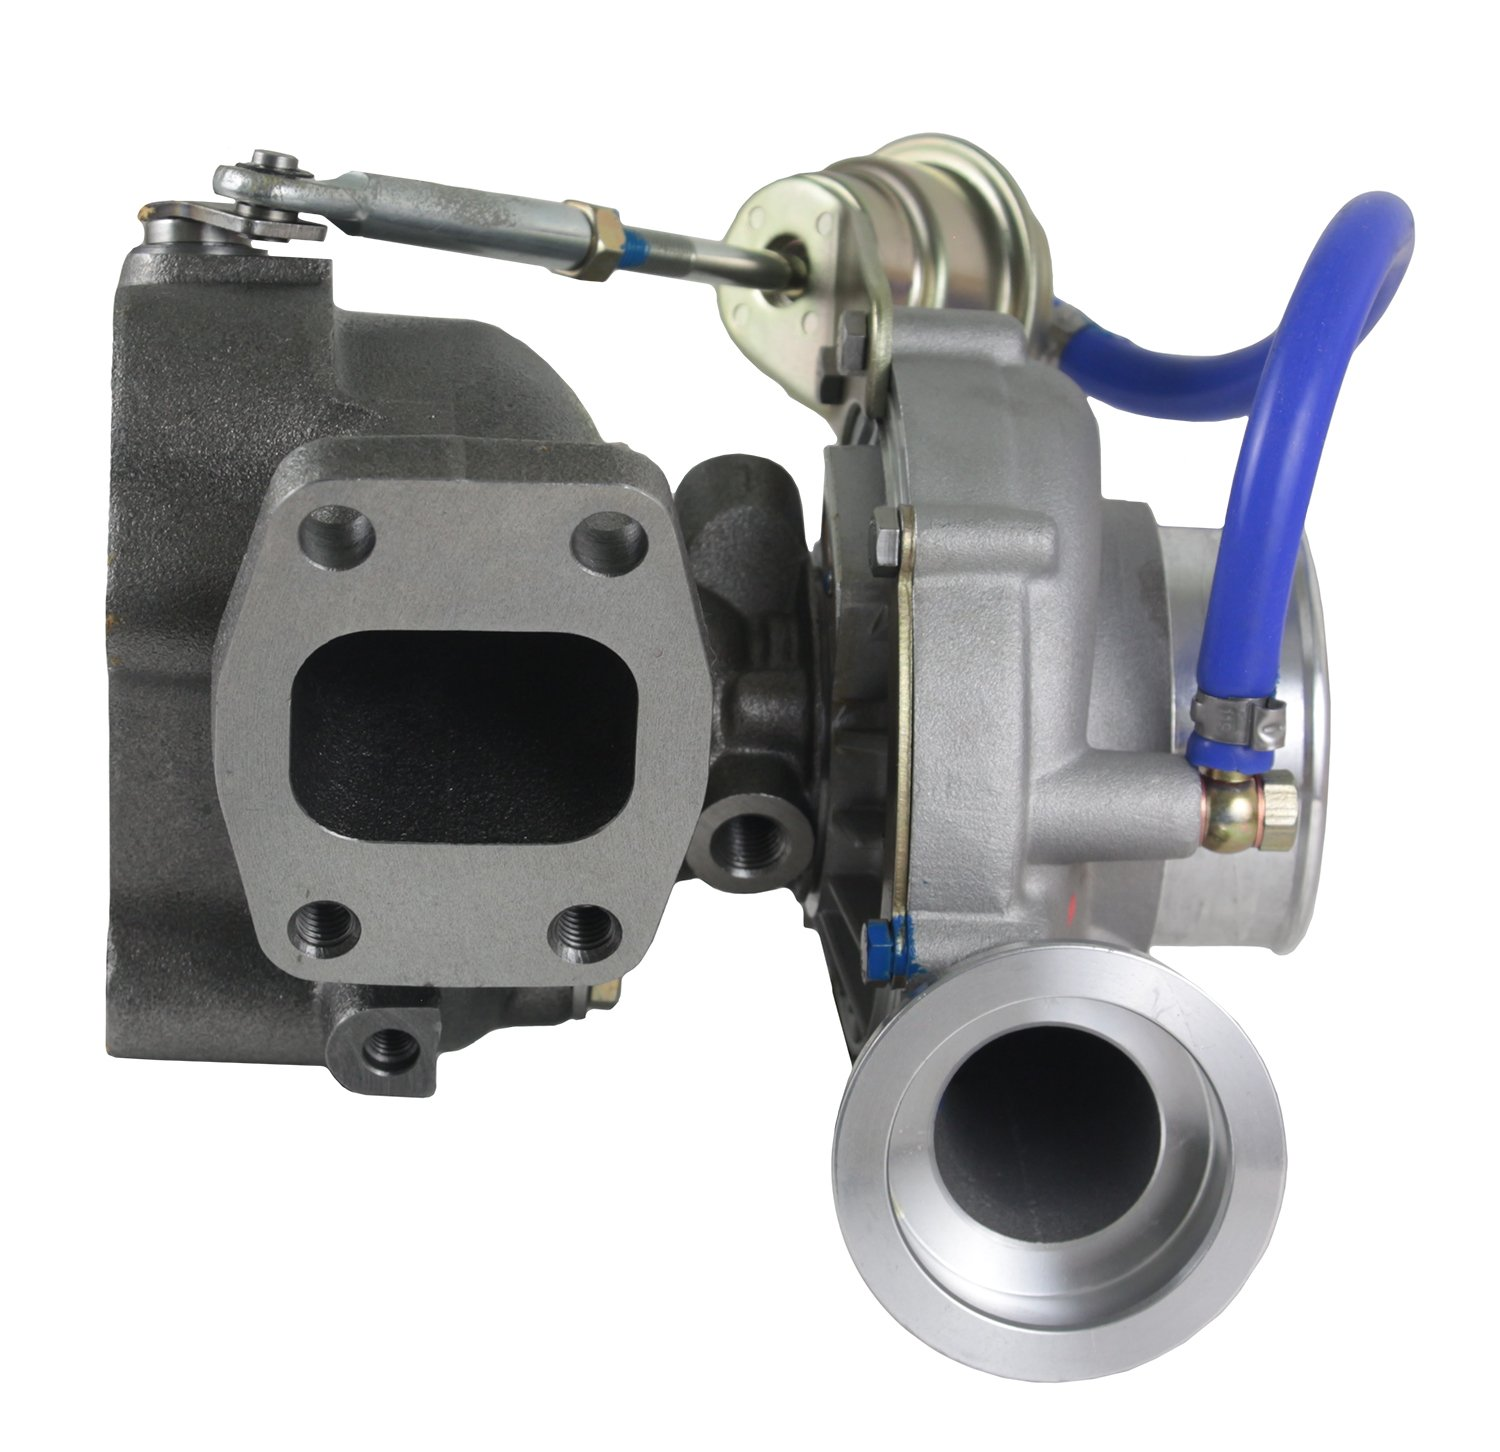 Amazon com: NEW TURBO CHARGER FITS FREIGHTLINER CENTURY